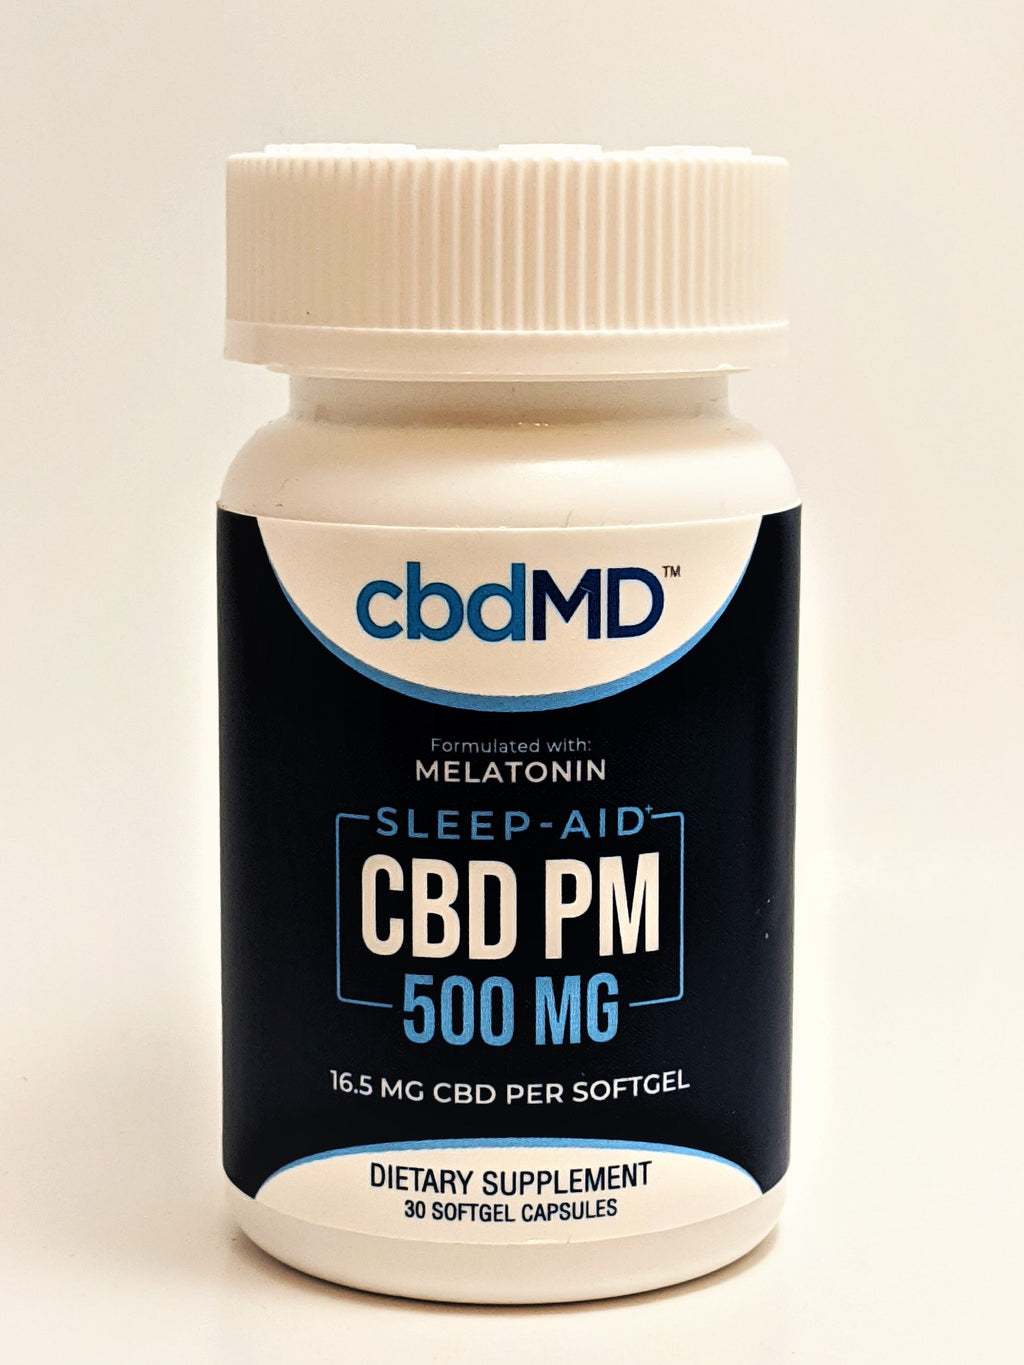 cbdMD 16.5 mg THC Free CBD PM Capsules, 30 Count (500 mg) - CBD Central